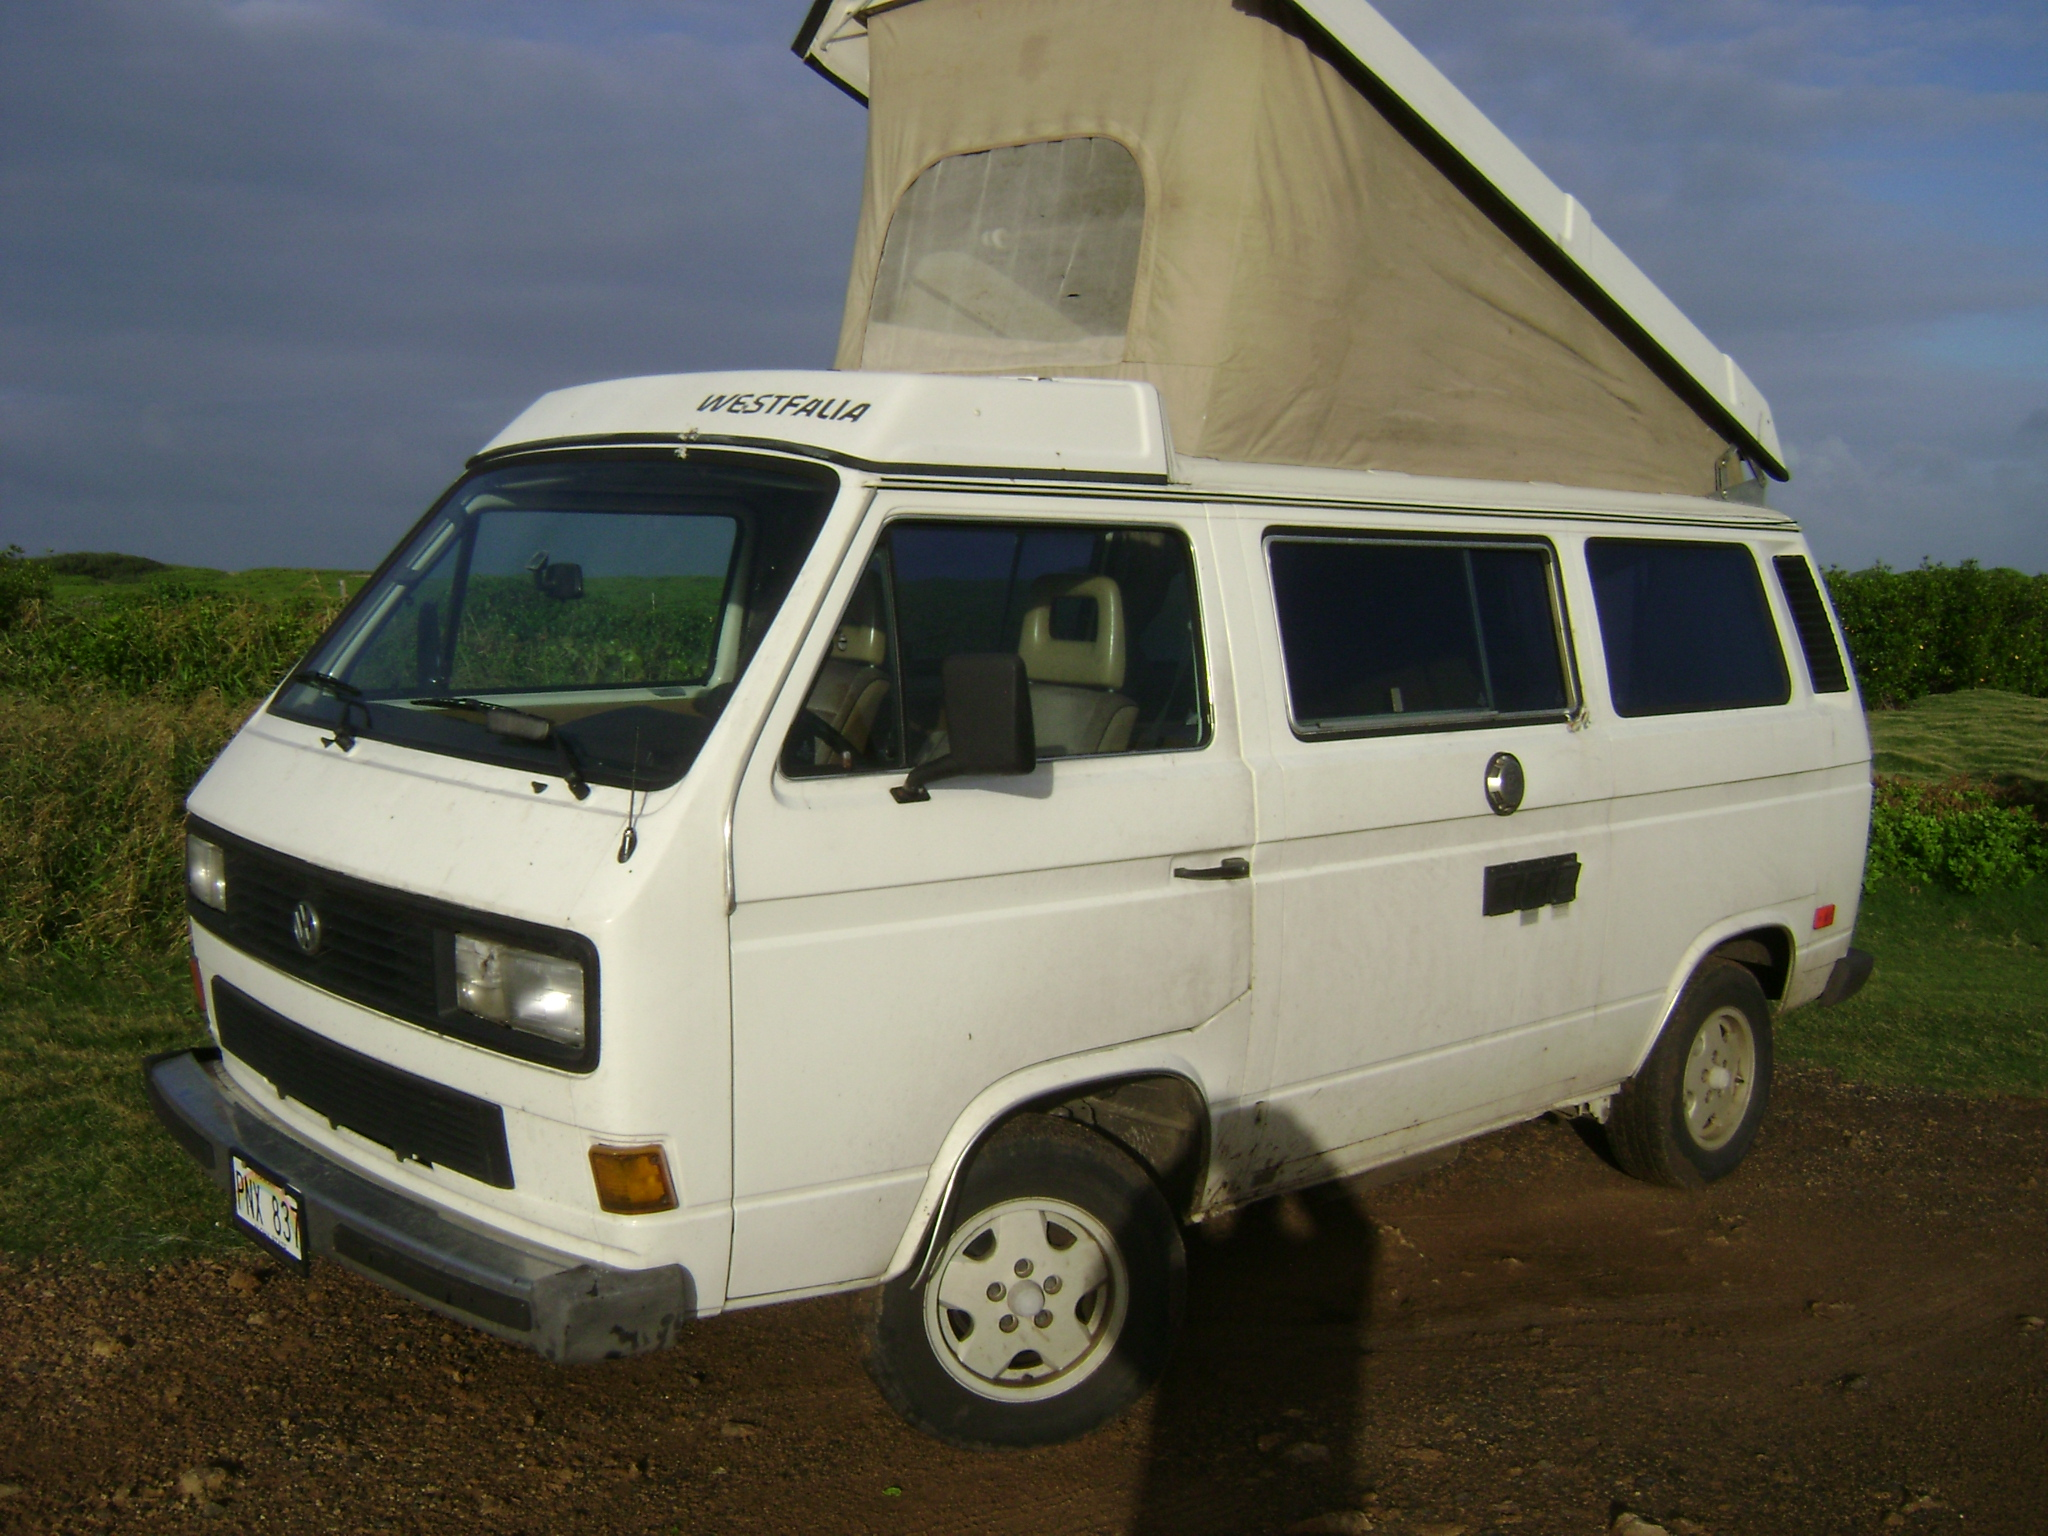 Volkswagen Westfalia Coppertone 1980